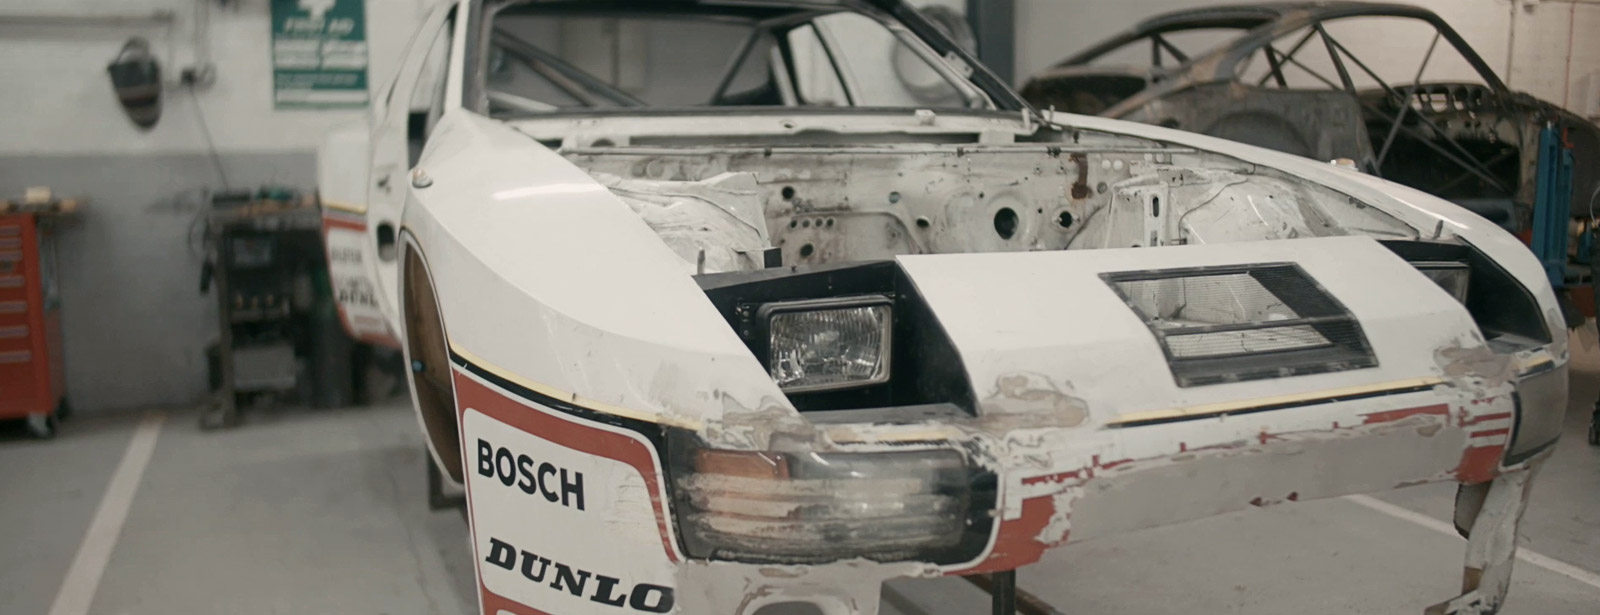 Porsche Cars GB - 924 GTP Restoration